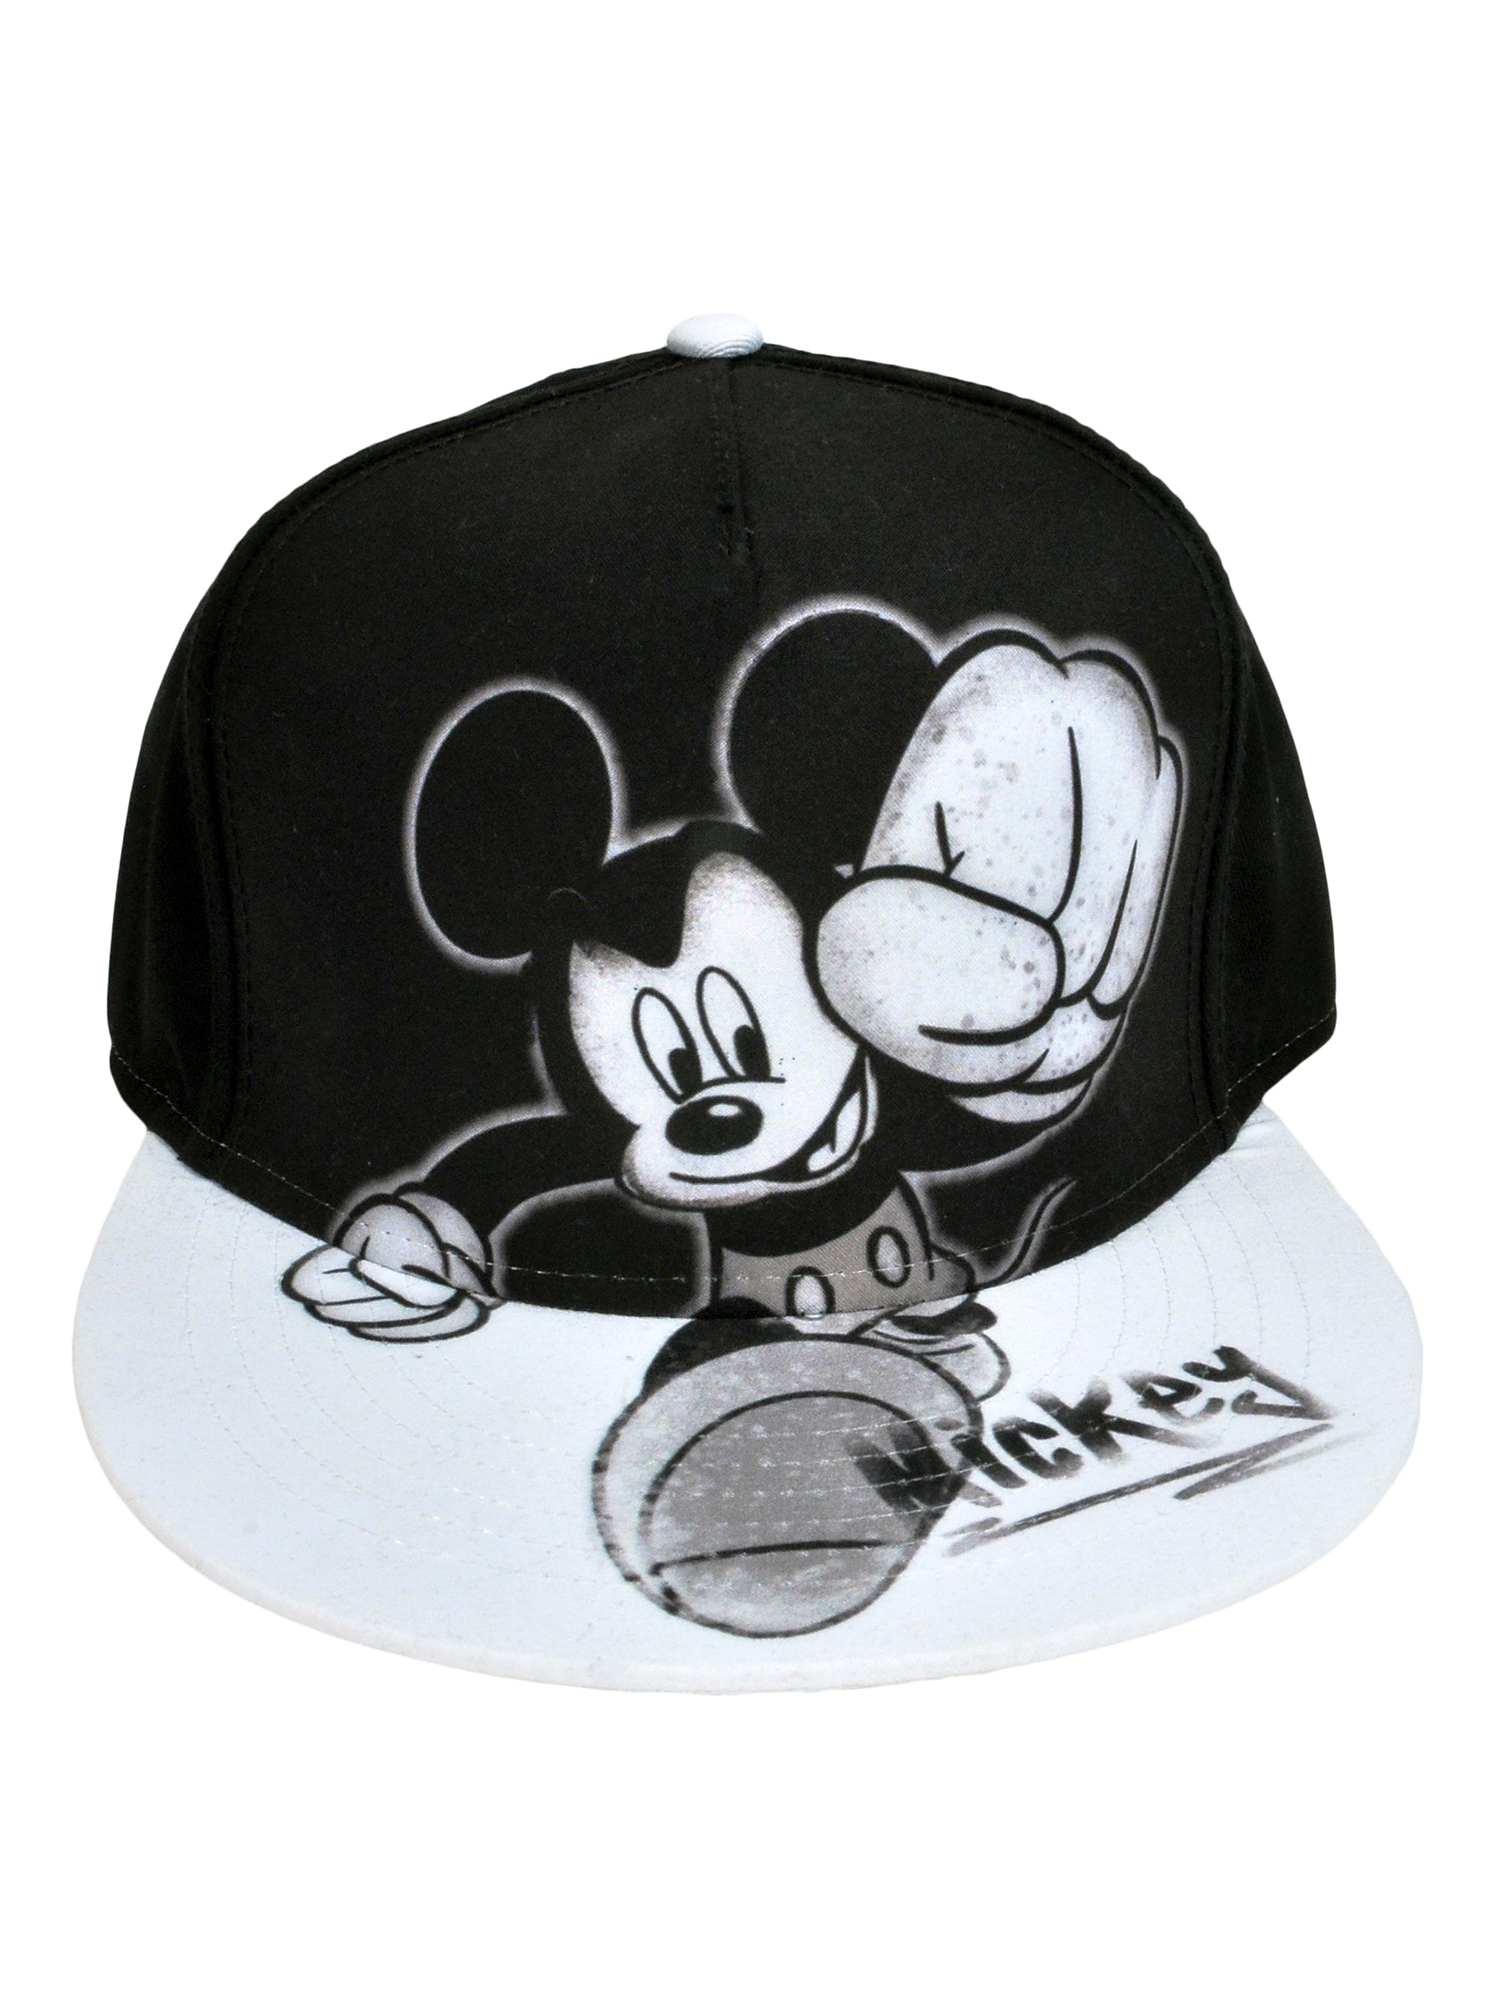 Youth Boys Mickey Mouse Graphic Baseball Hat Cap - Black Snapback 0dd9ed97840